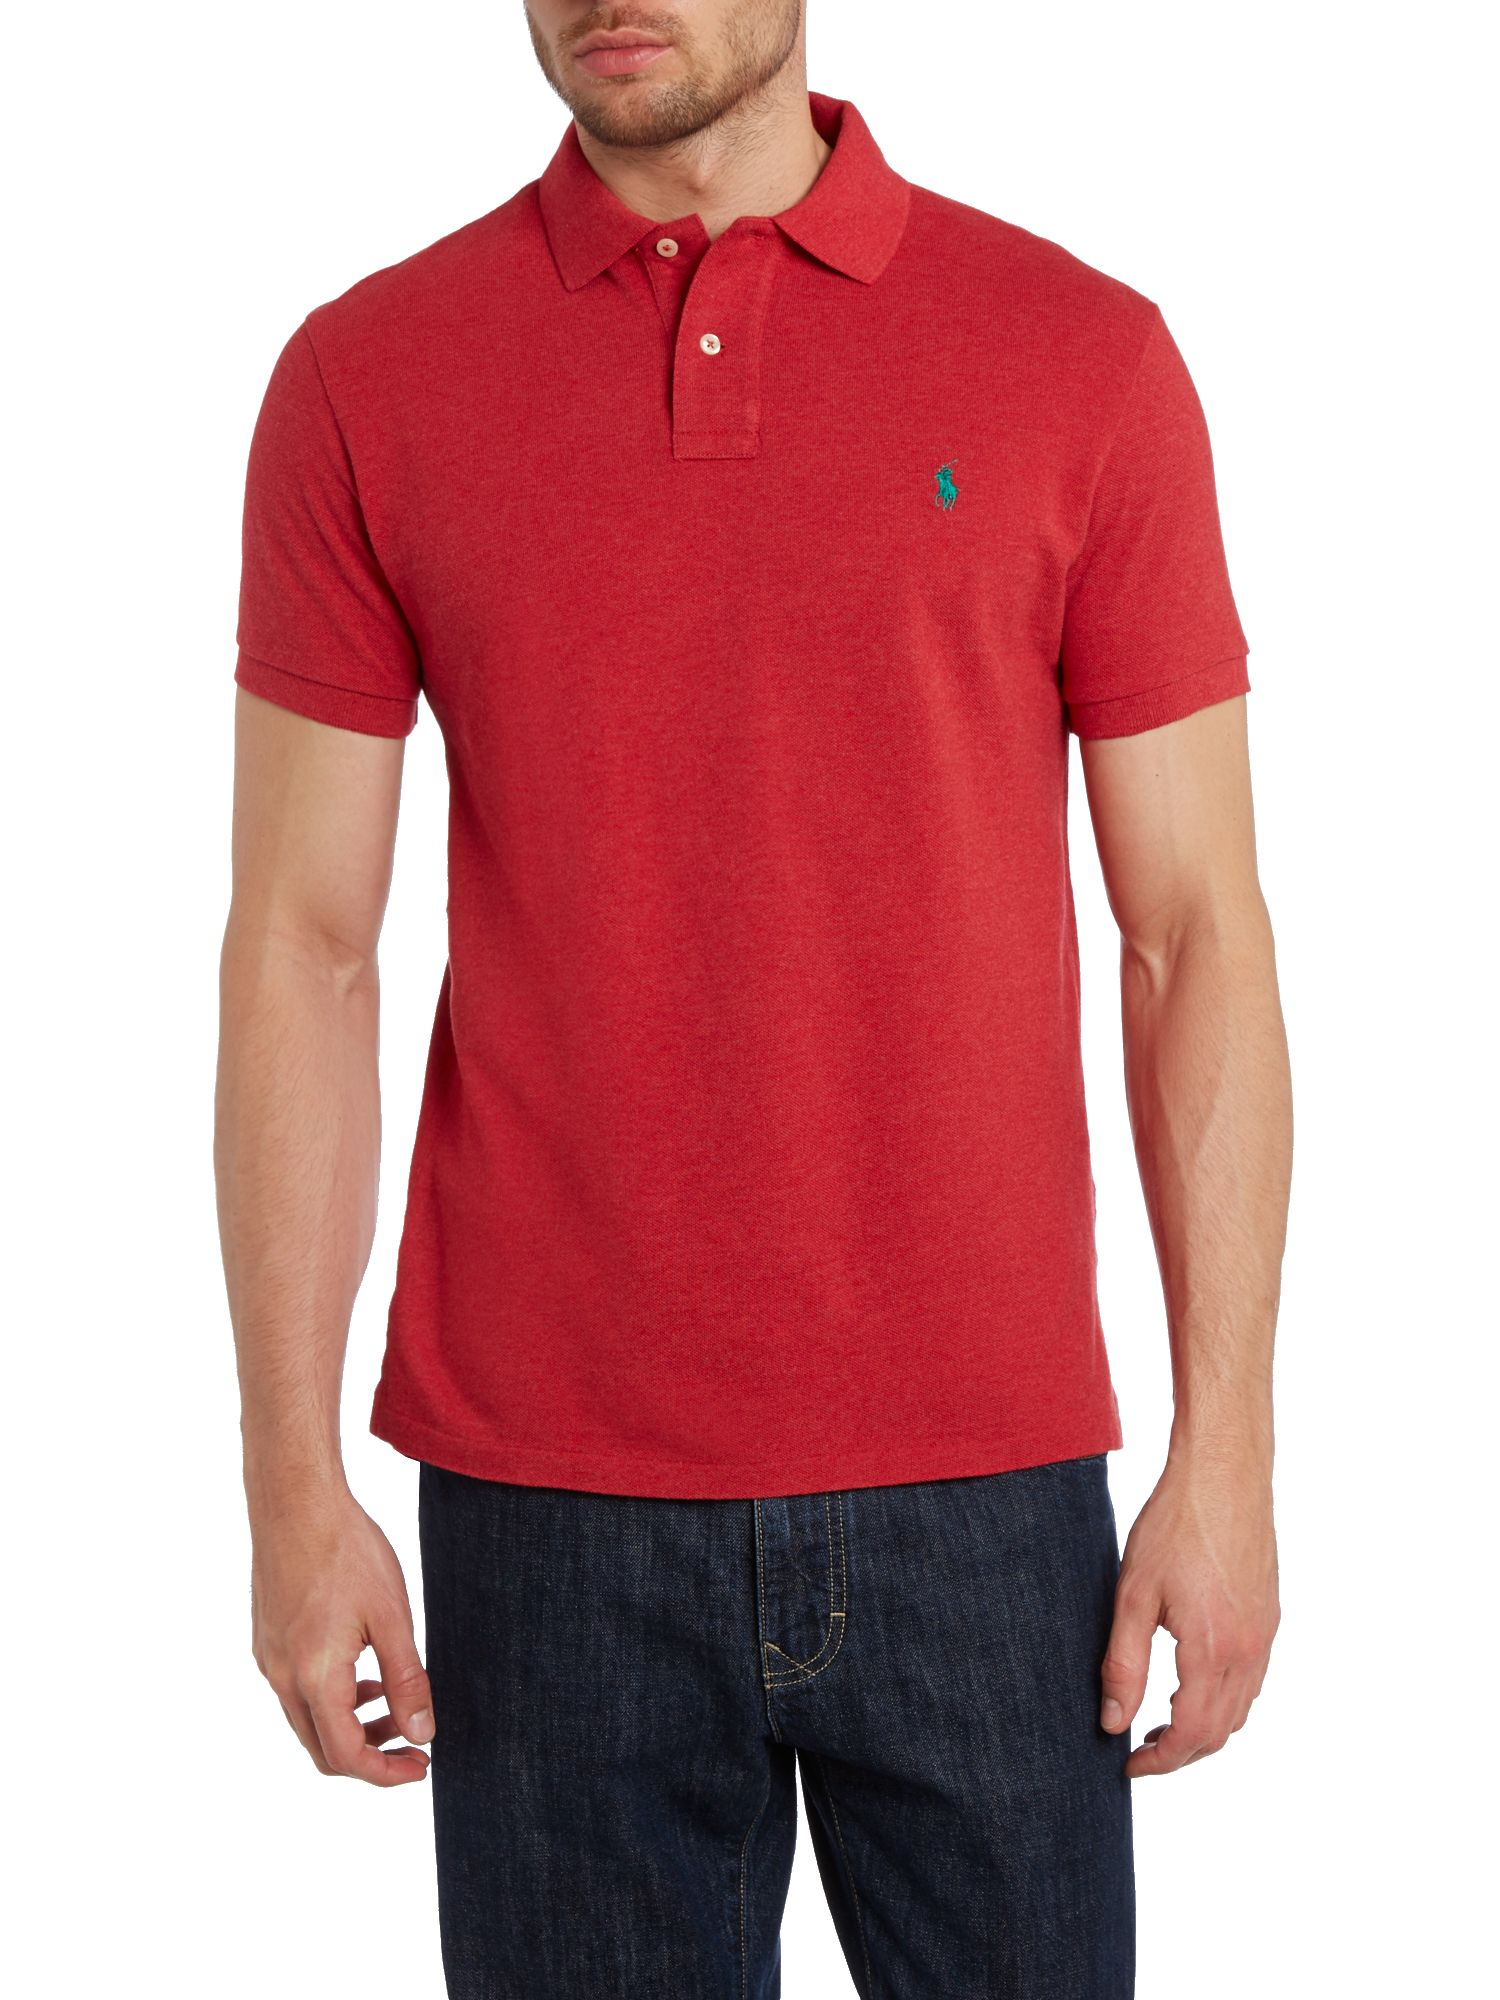 Lyst polo ralph lauren custom fit short sleeve mesh polo for Big and tall custom polo shirts